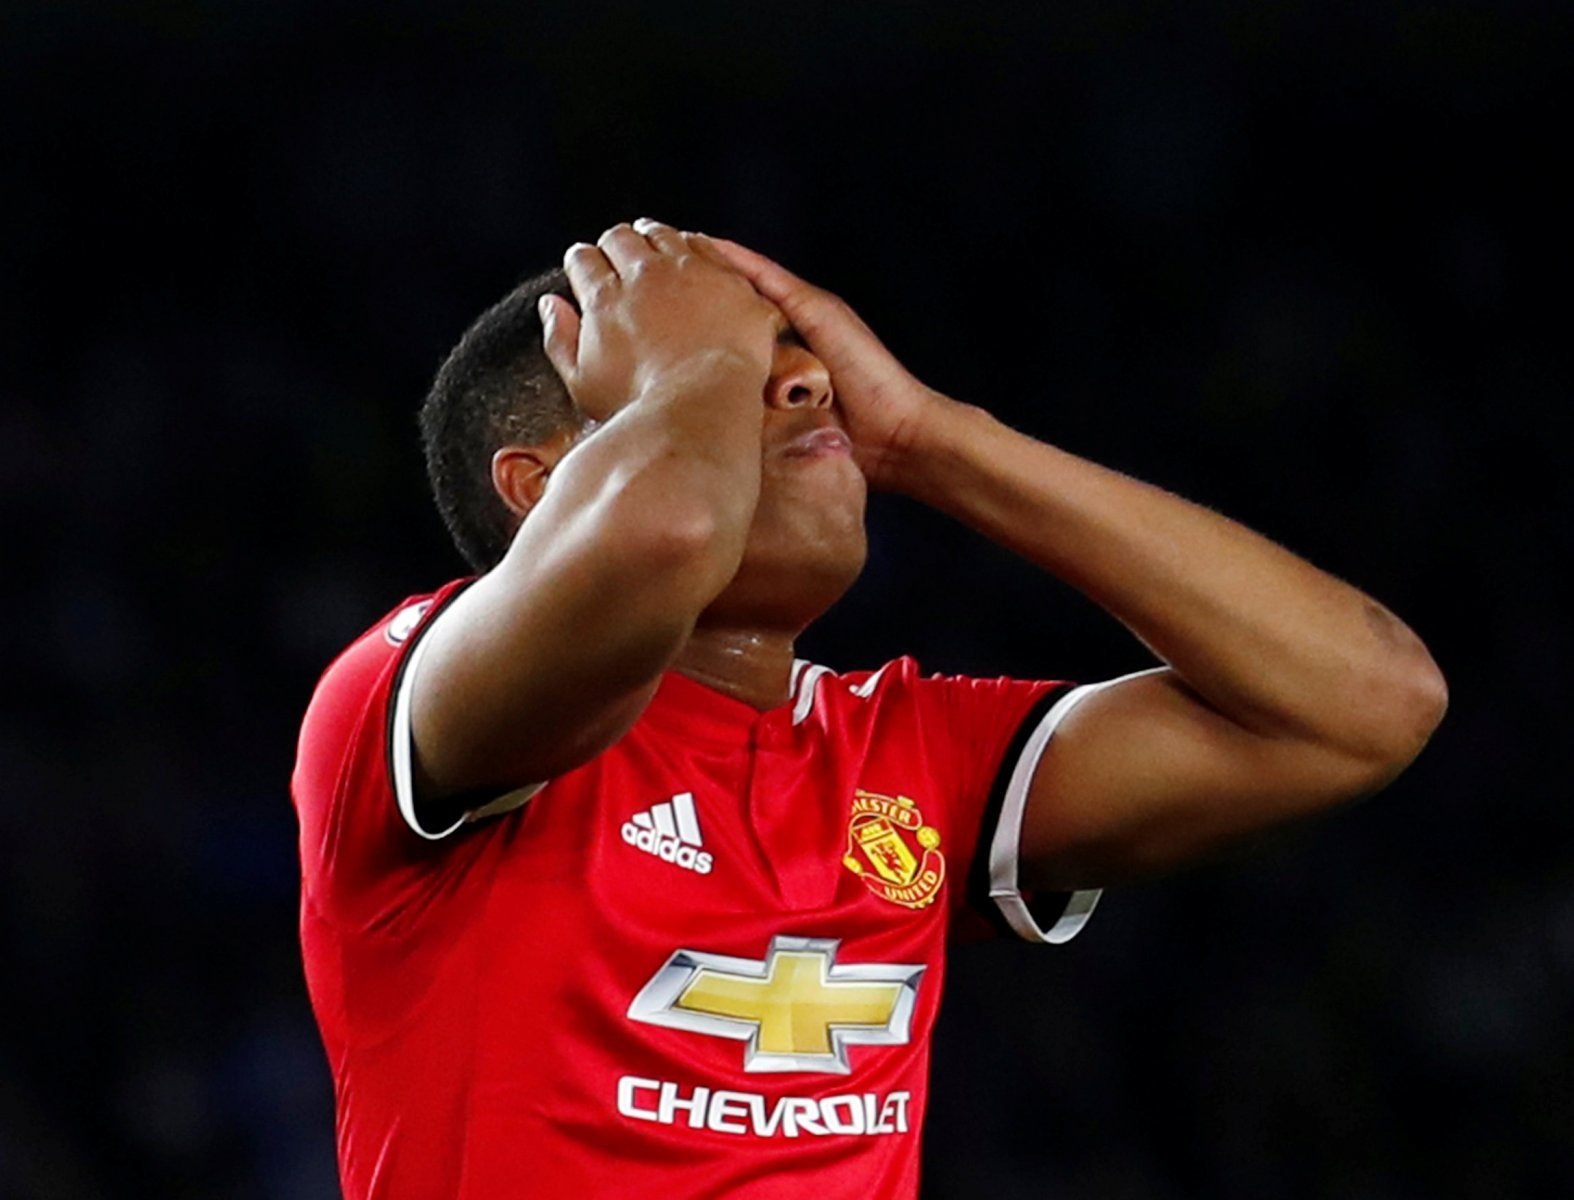 Potential deal for Anthony Martial could piece of business for Arsenal